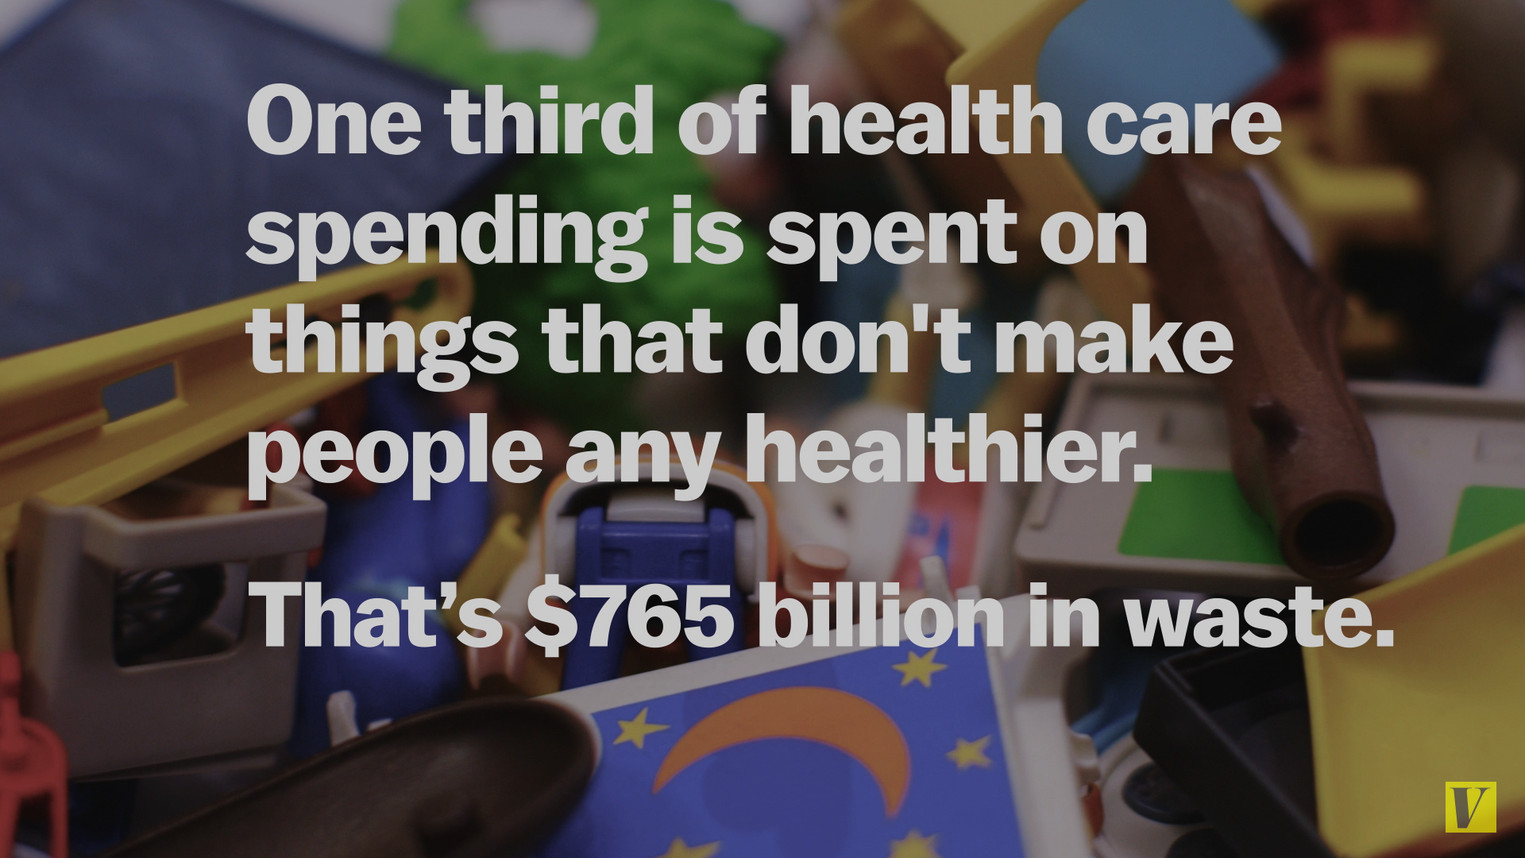 xex_051_healthFacts_v4prores__0-00-48-16_.0.png